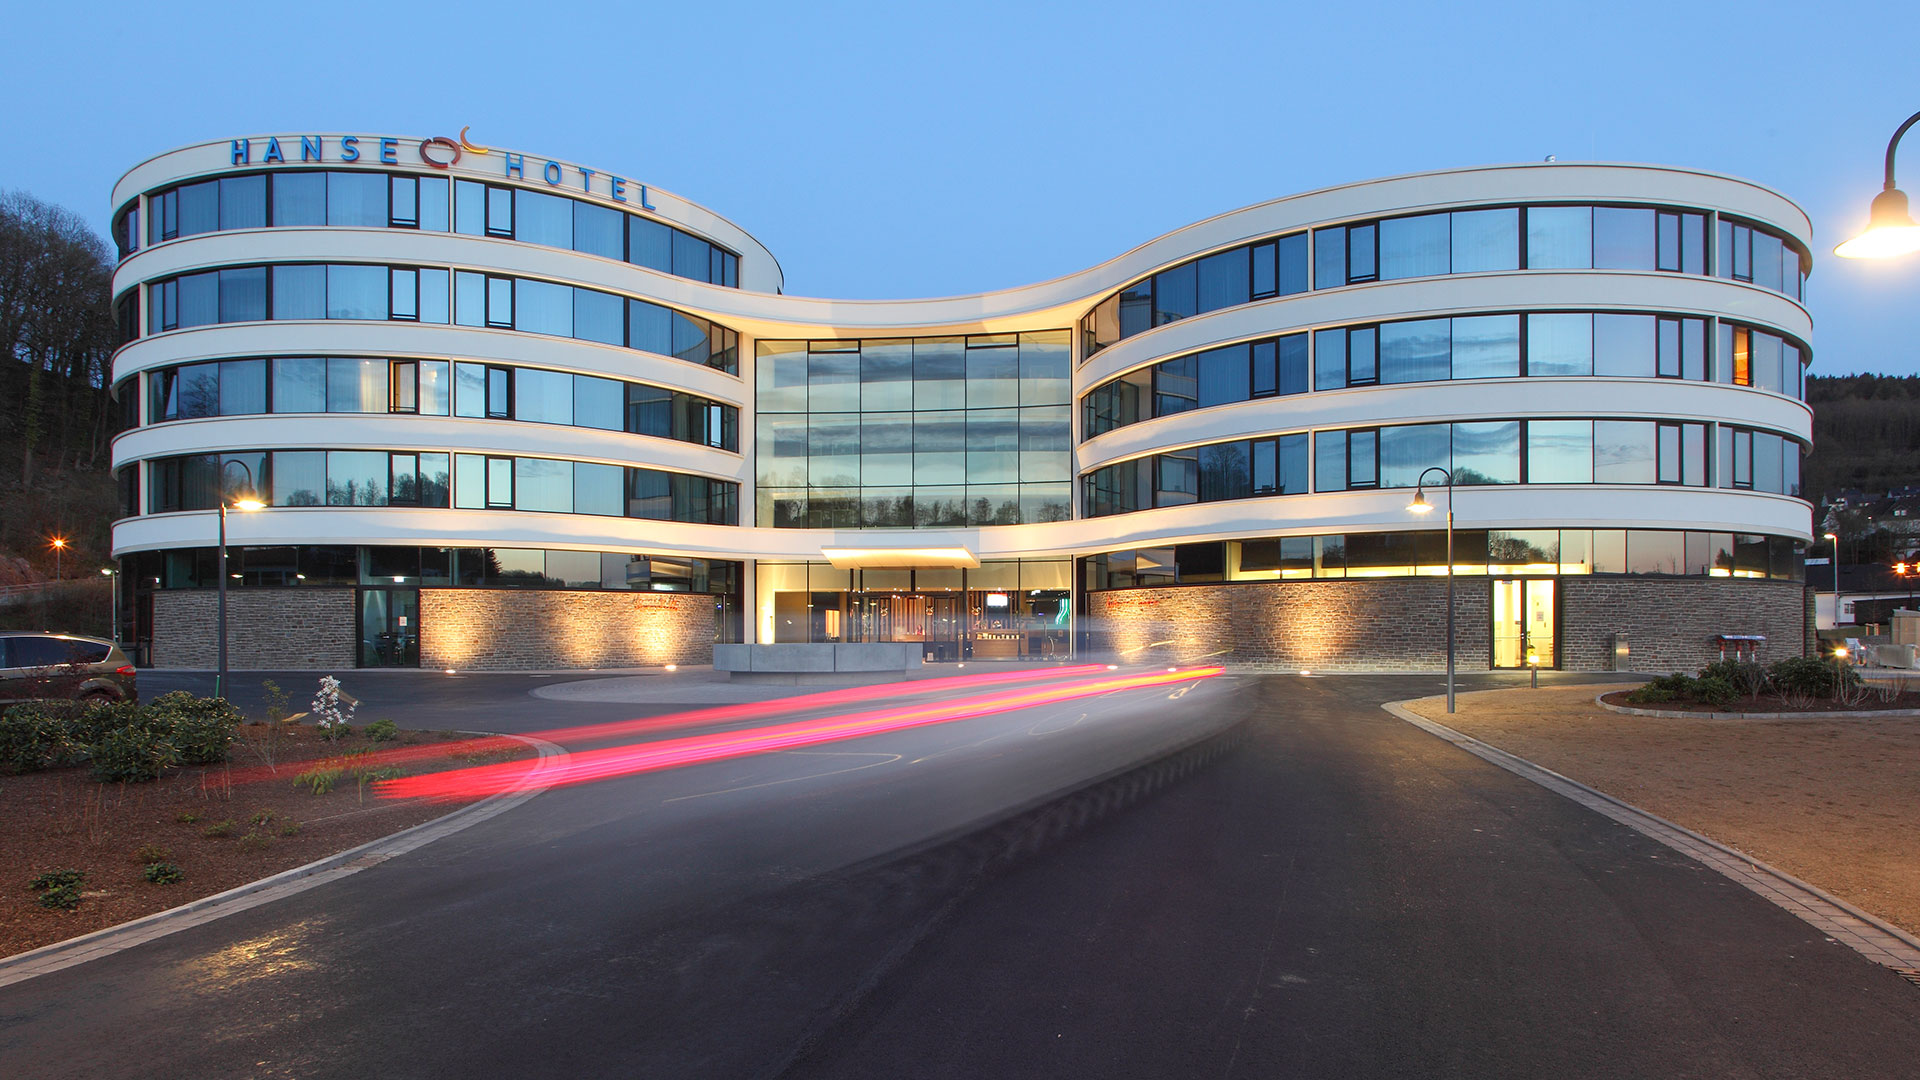 Photo of the exterior view - 01 - Hanse Hotel Attendorn